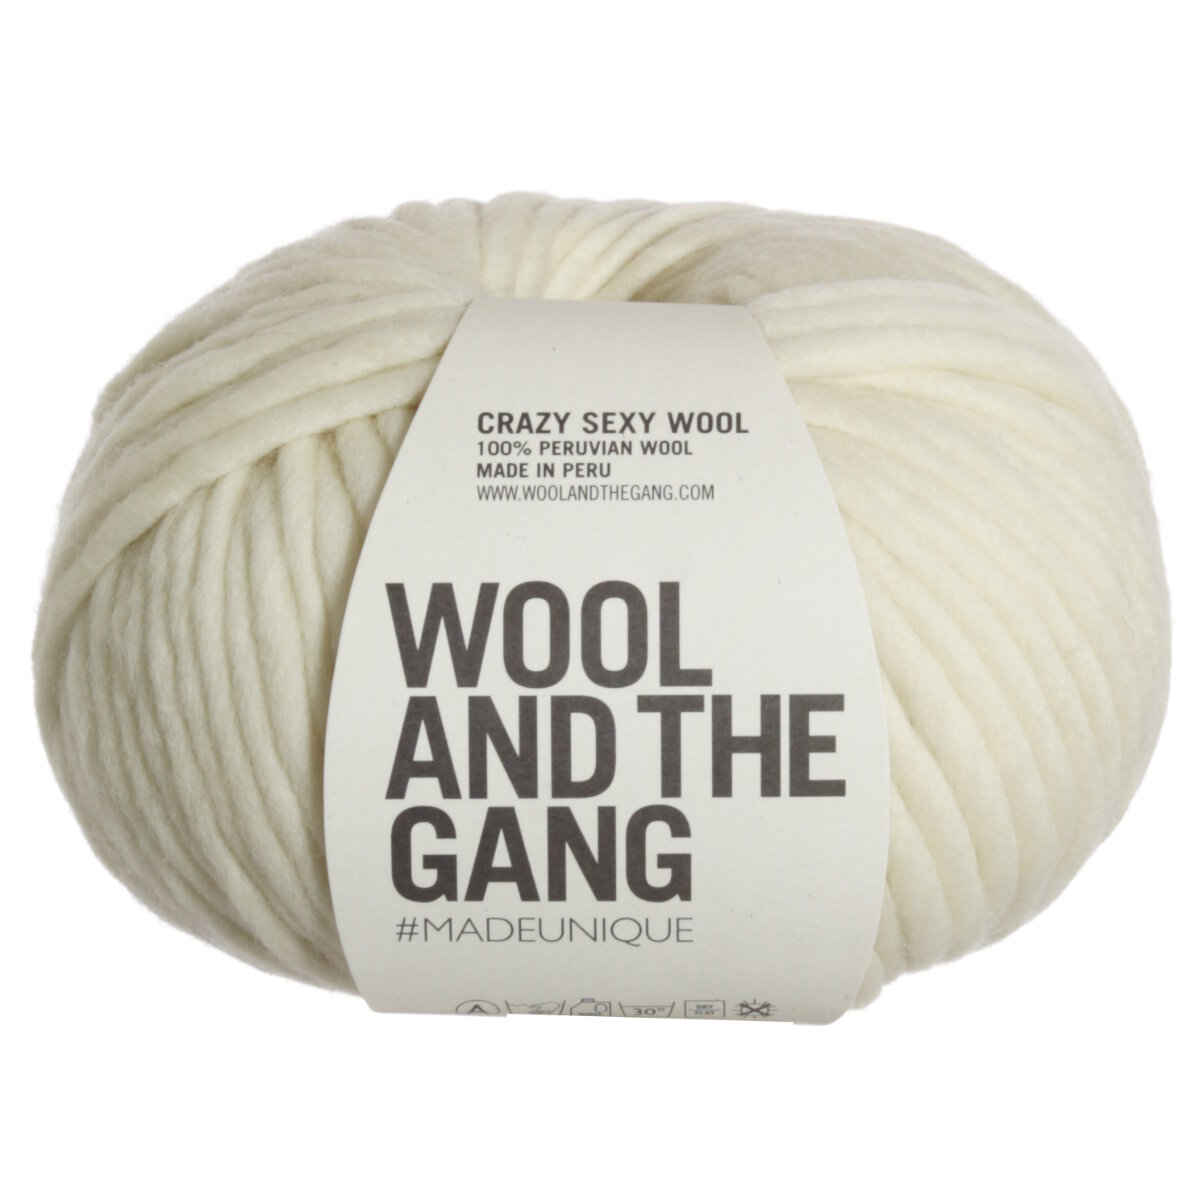 Wool and the gang crazy sexy wool yarn ivory white at - Gang and the wool ...